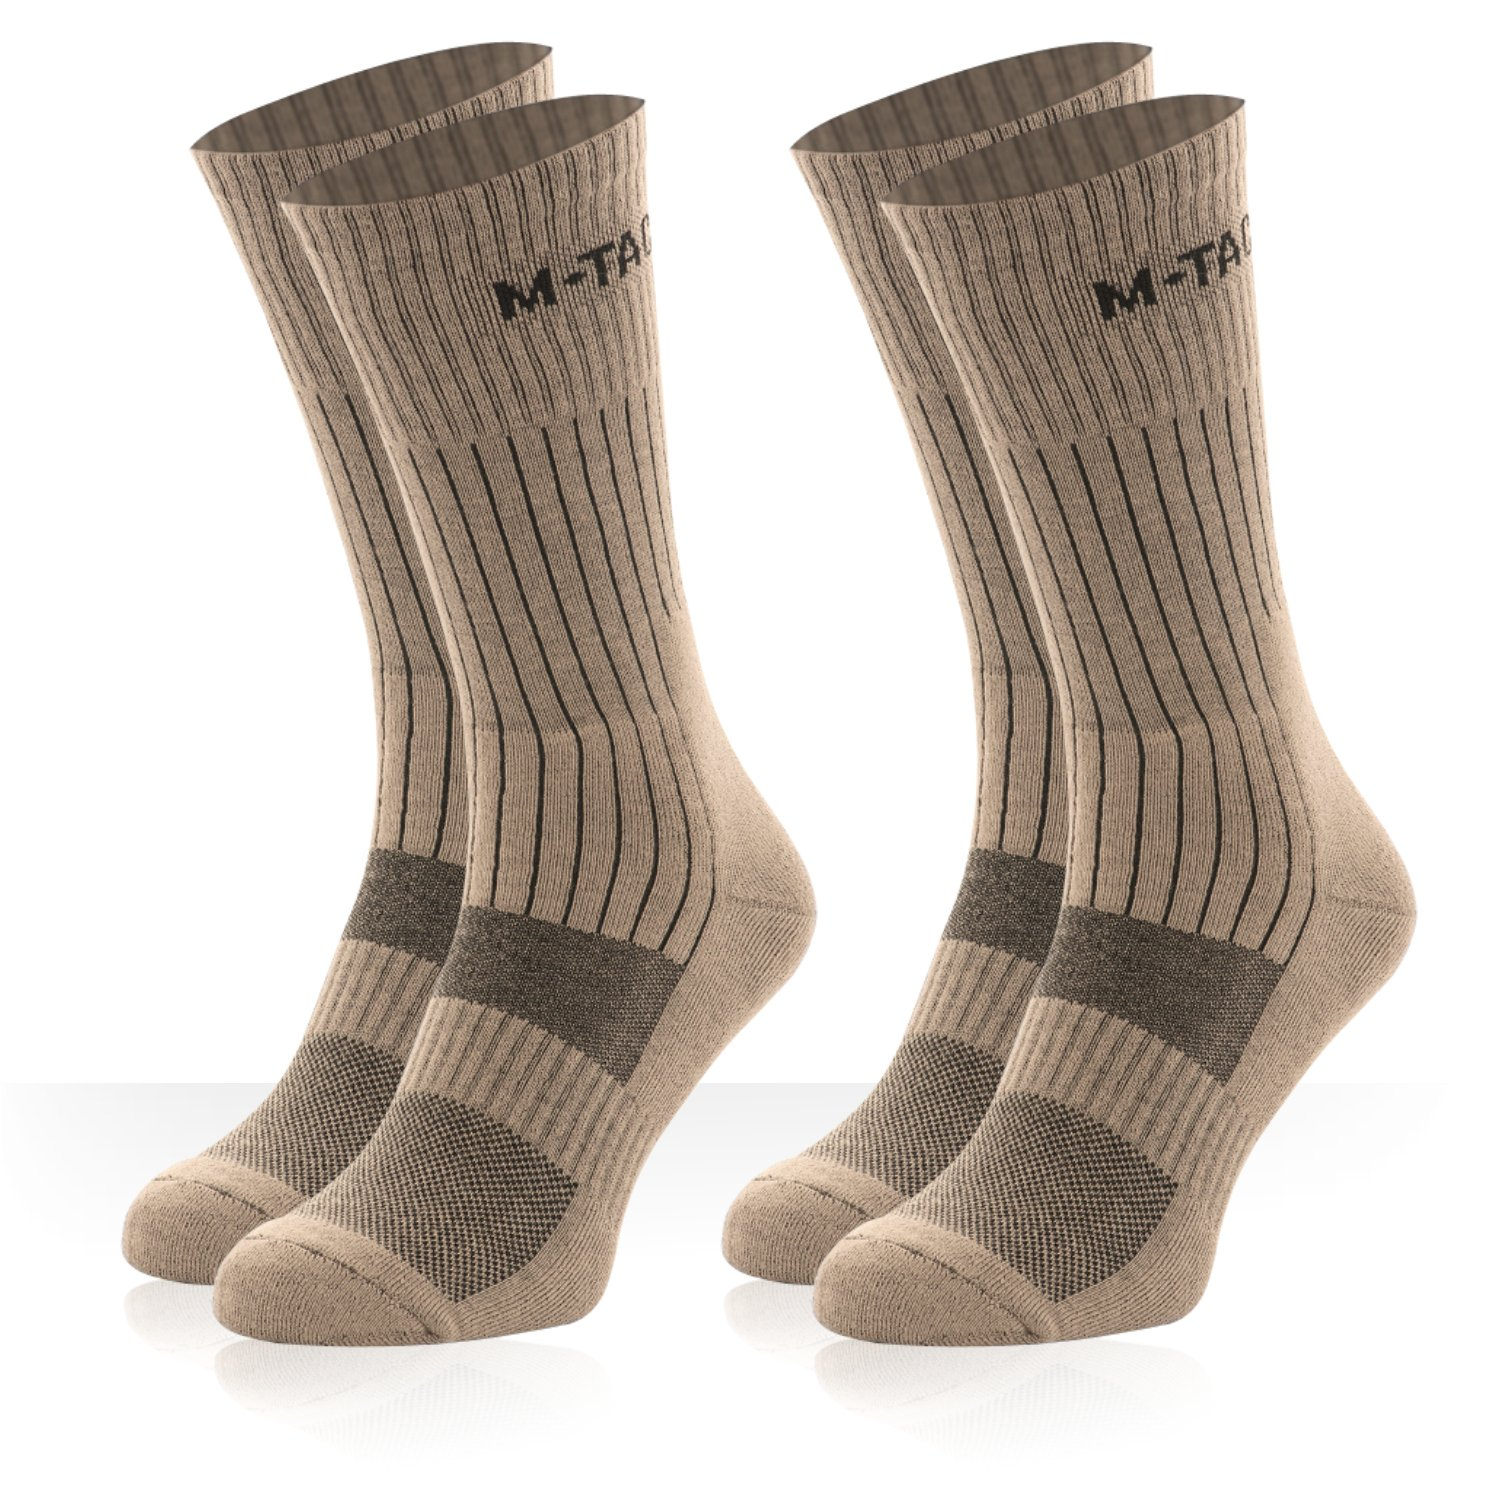 tactical socks - crew socks - military boot socks - outdoor socks - 2 pair pack (Coyote Tan 2 Pairs, Medium)